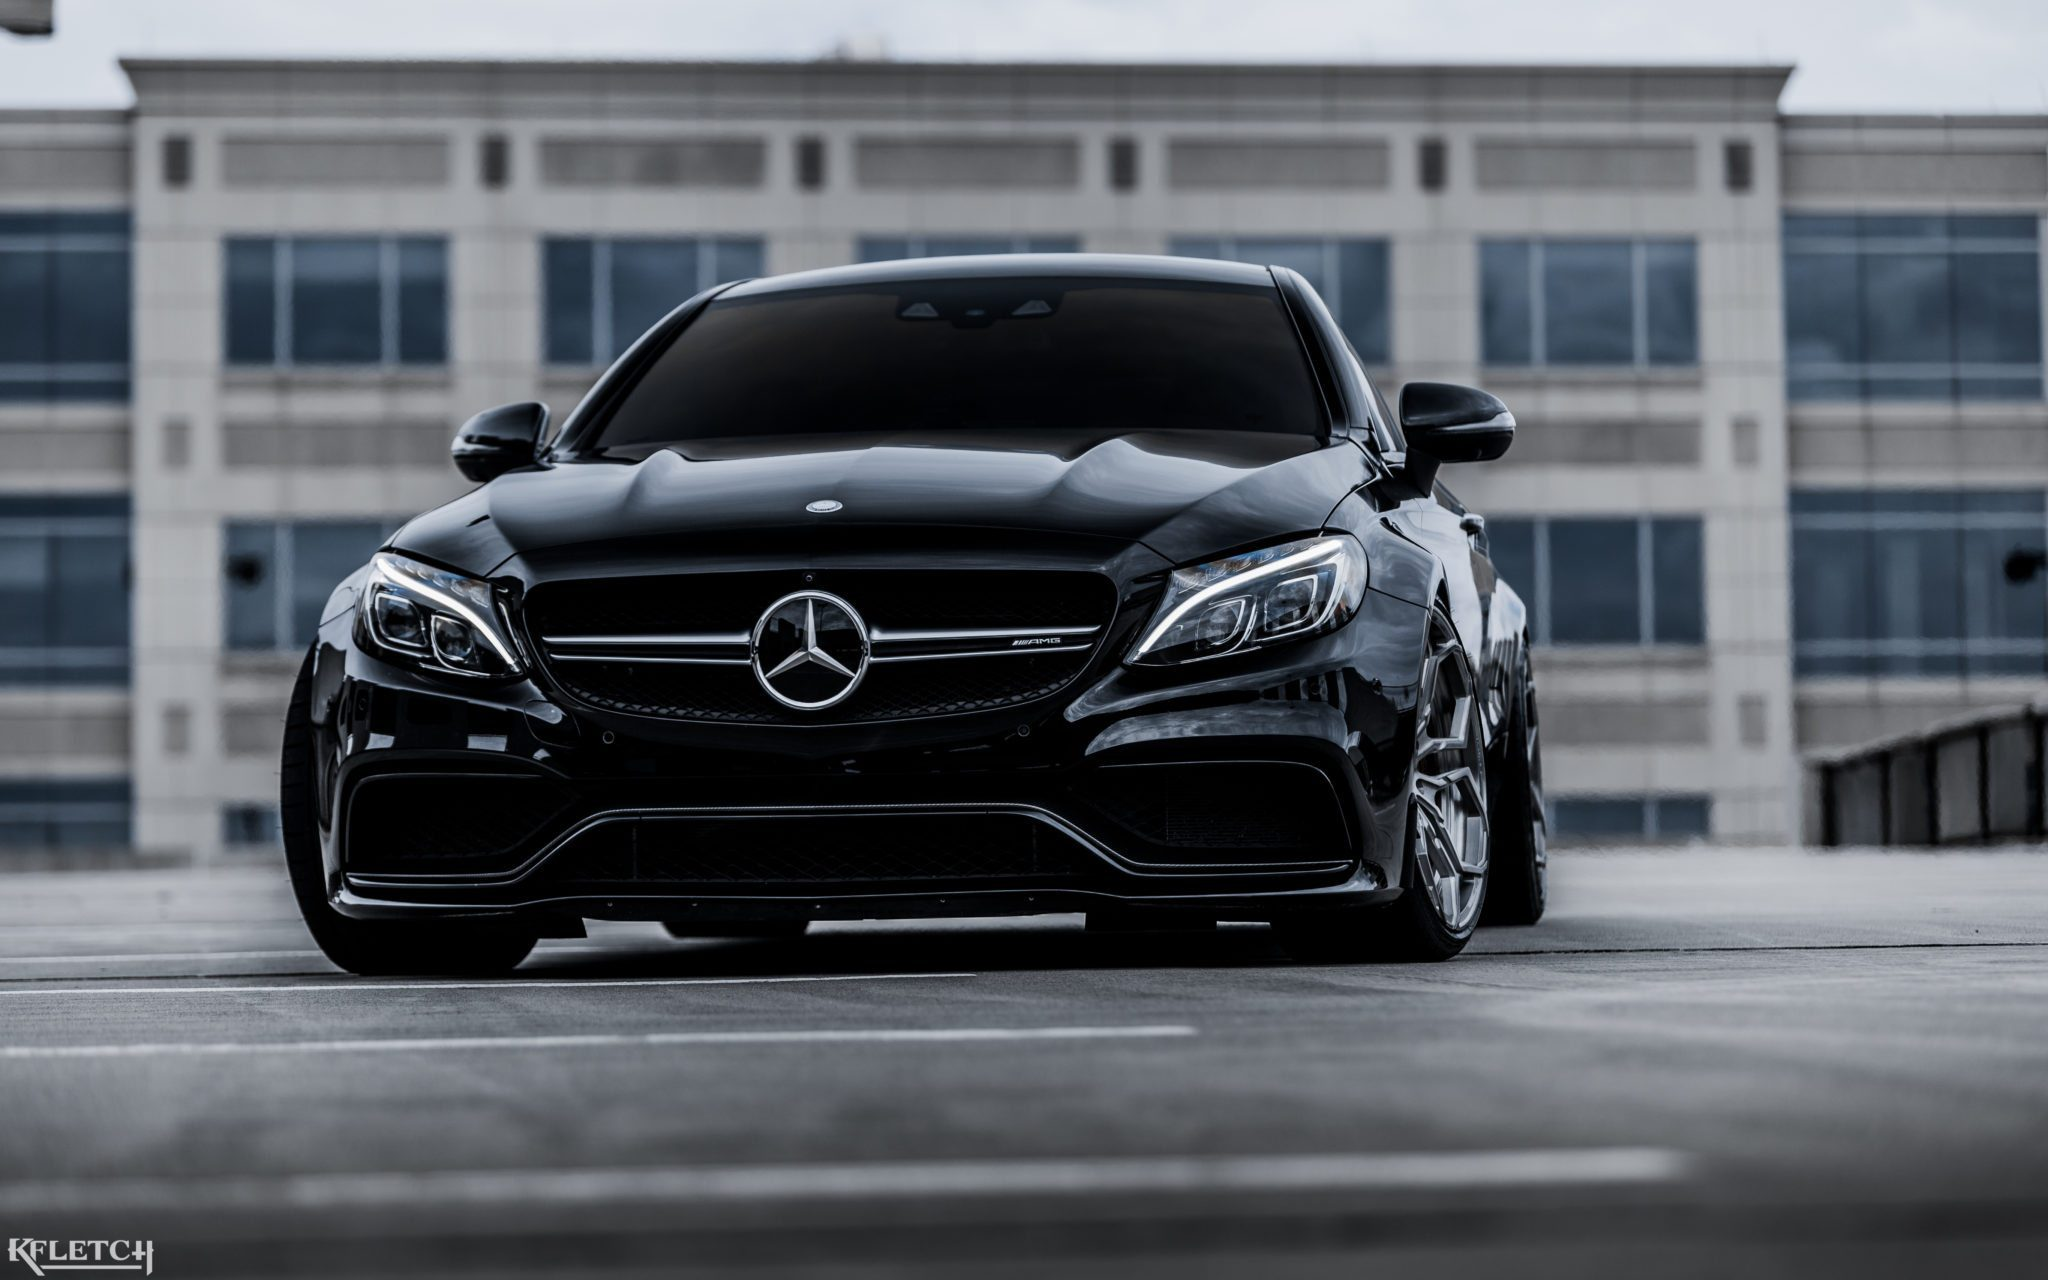 Audi Black Cars Wallpapers Gorgeous Black Mercedes Benz C63 Amg With Velos